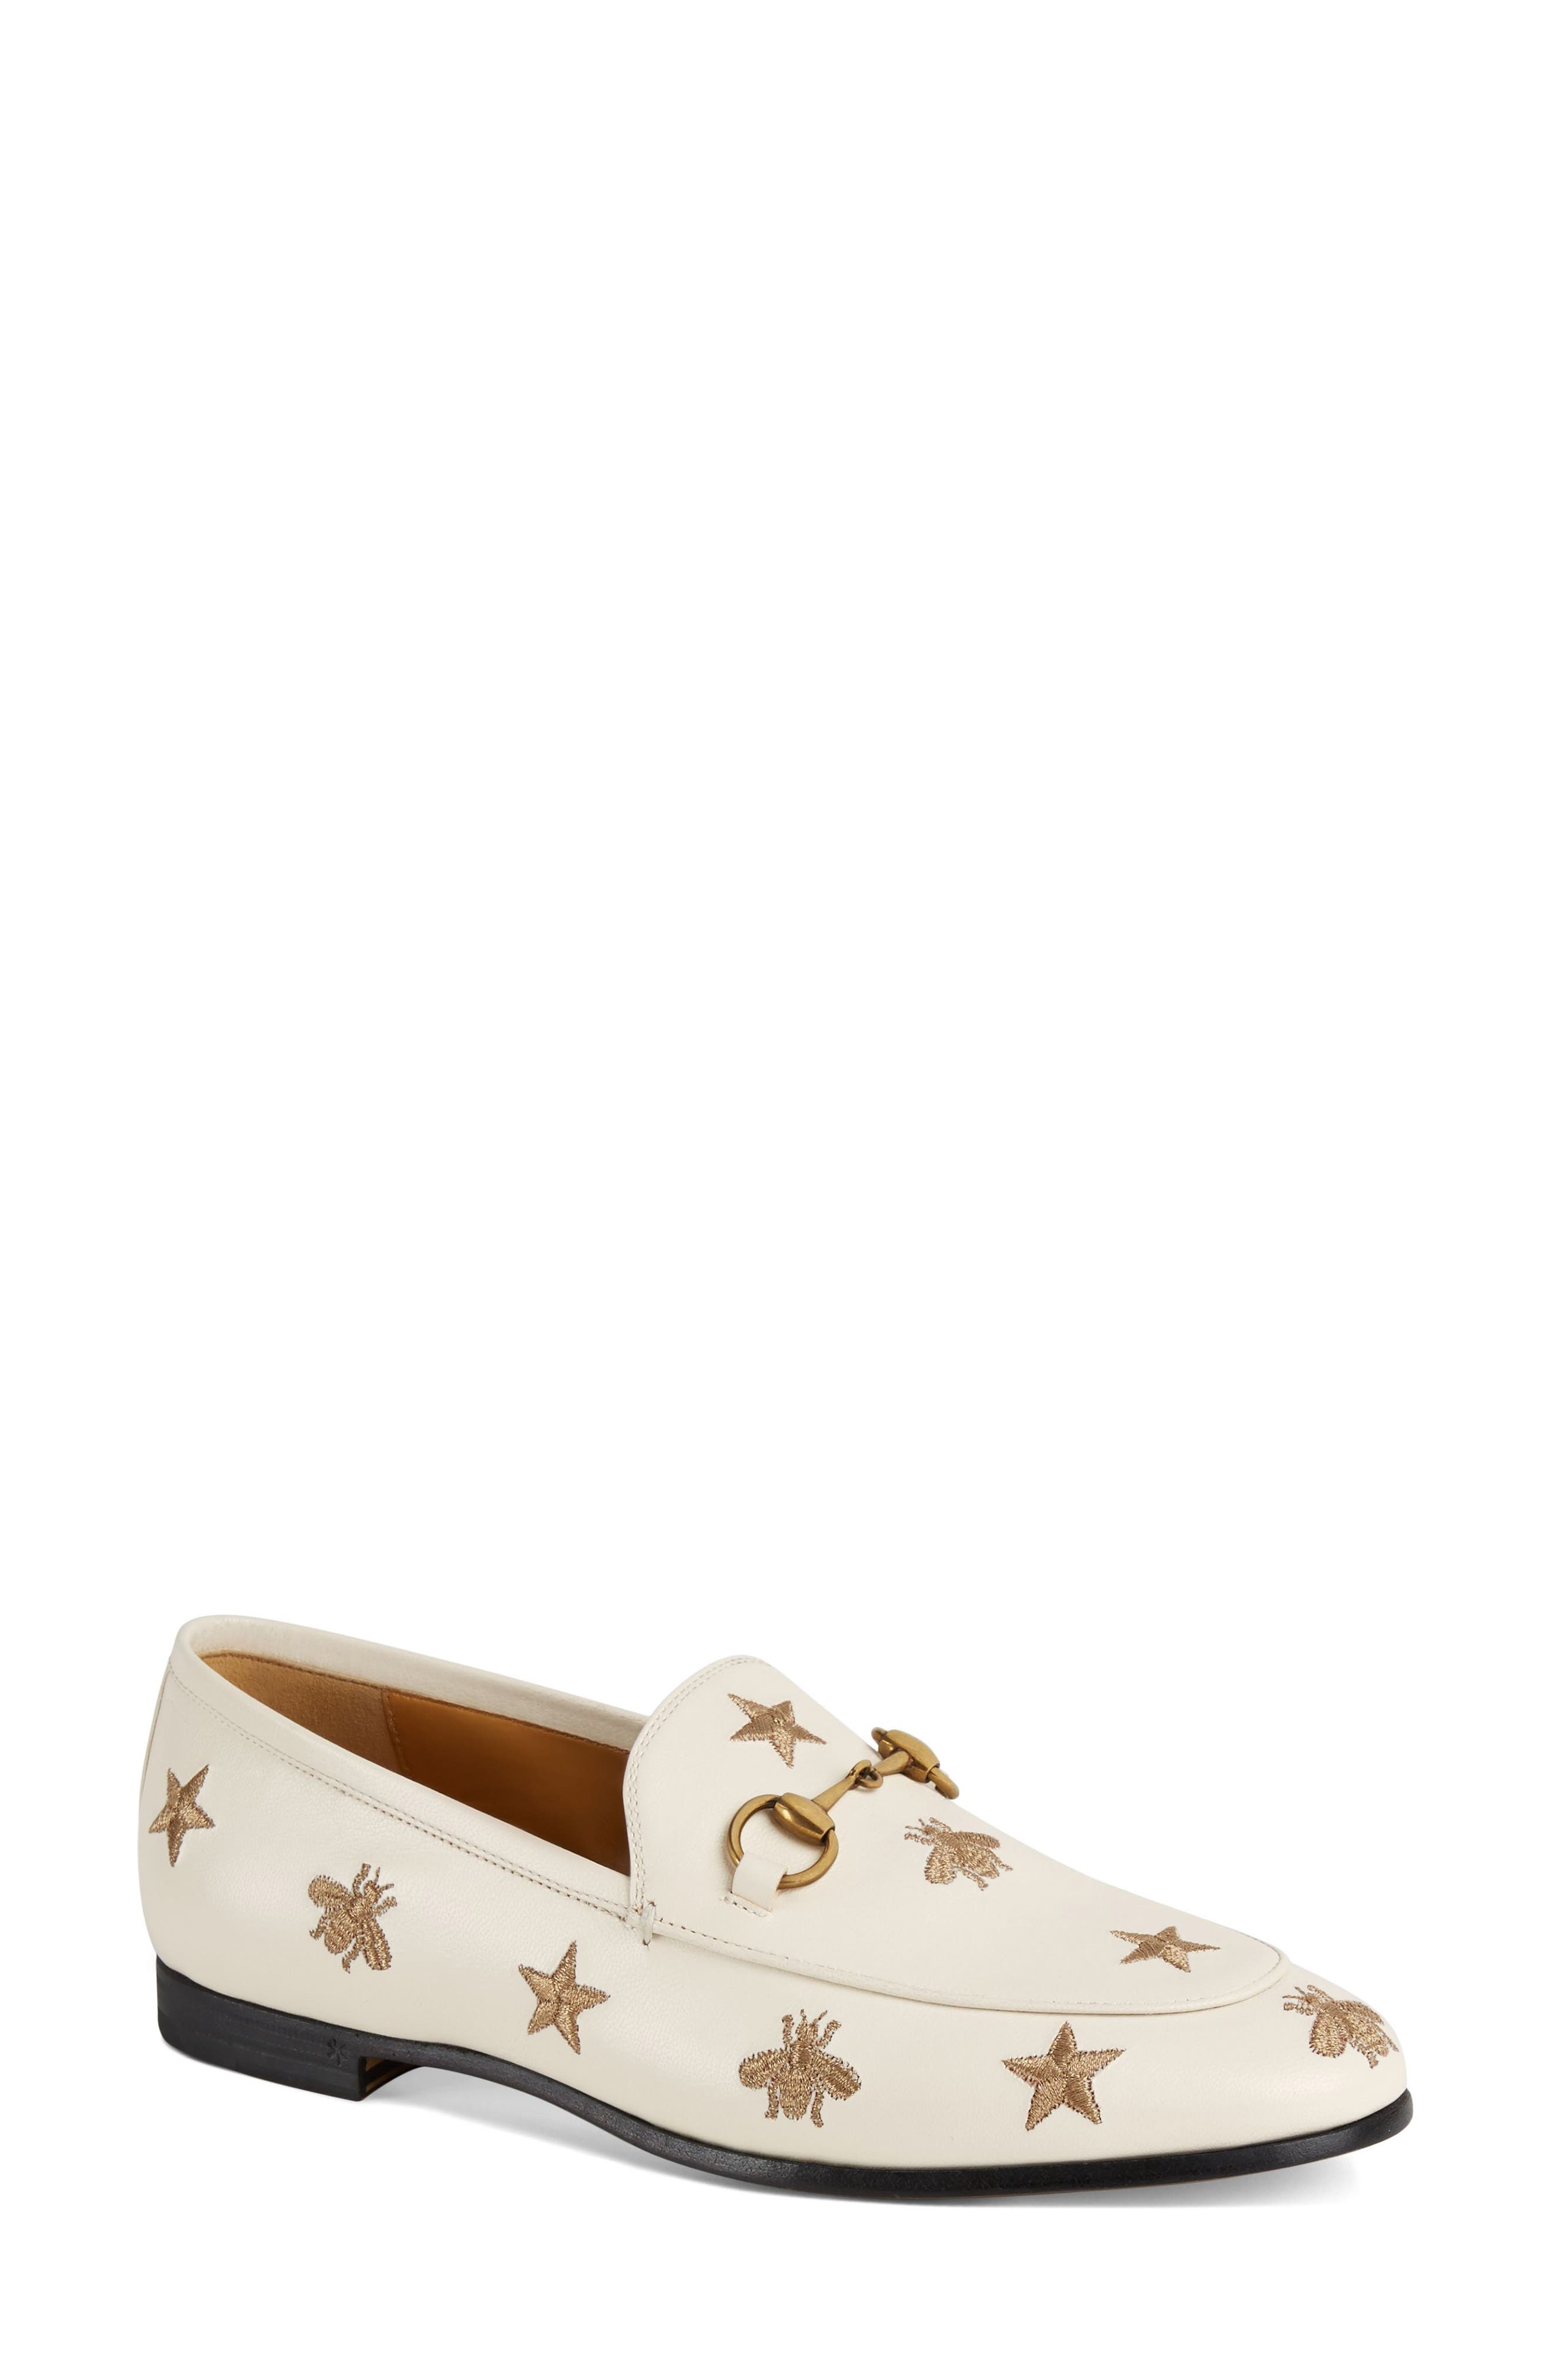 Gucci Jordaan Embroidered Bee Loafer, White